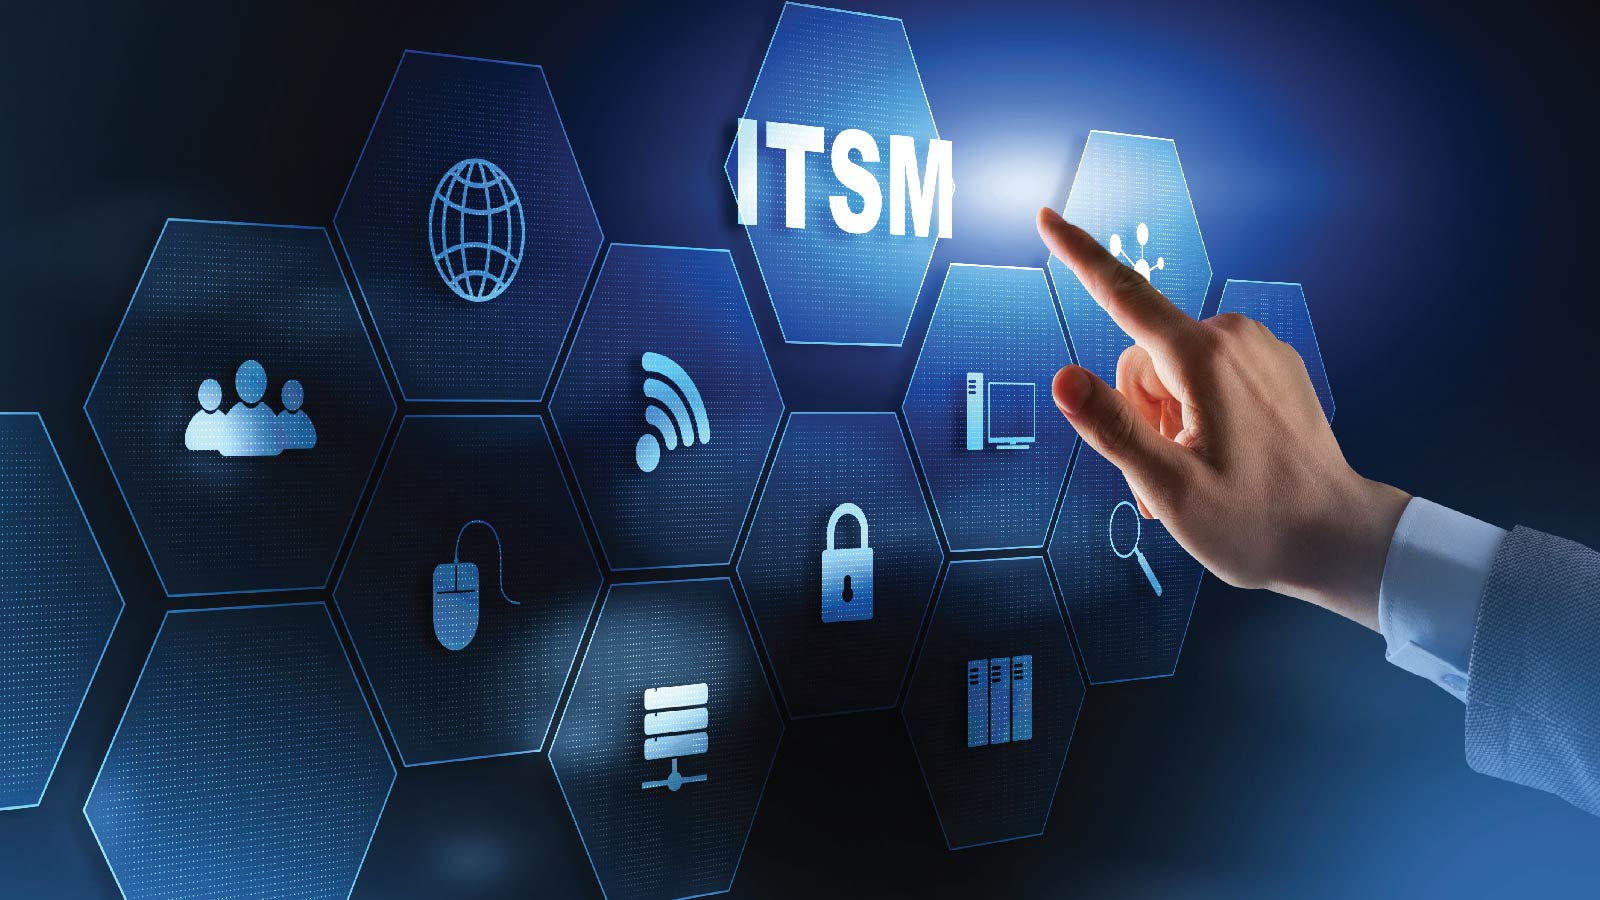 The Pandemic has increased ITSM tickets yet decreased their Quality